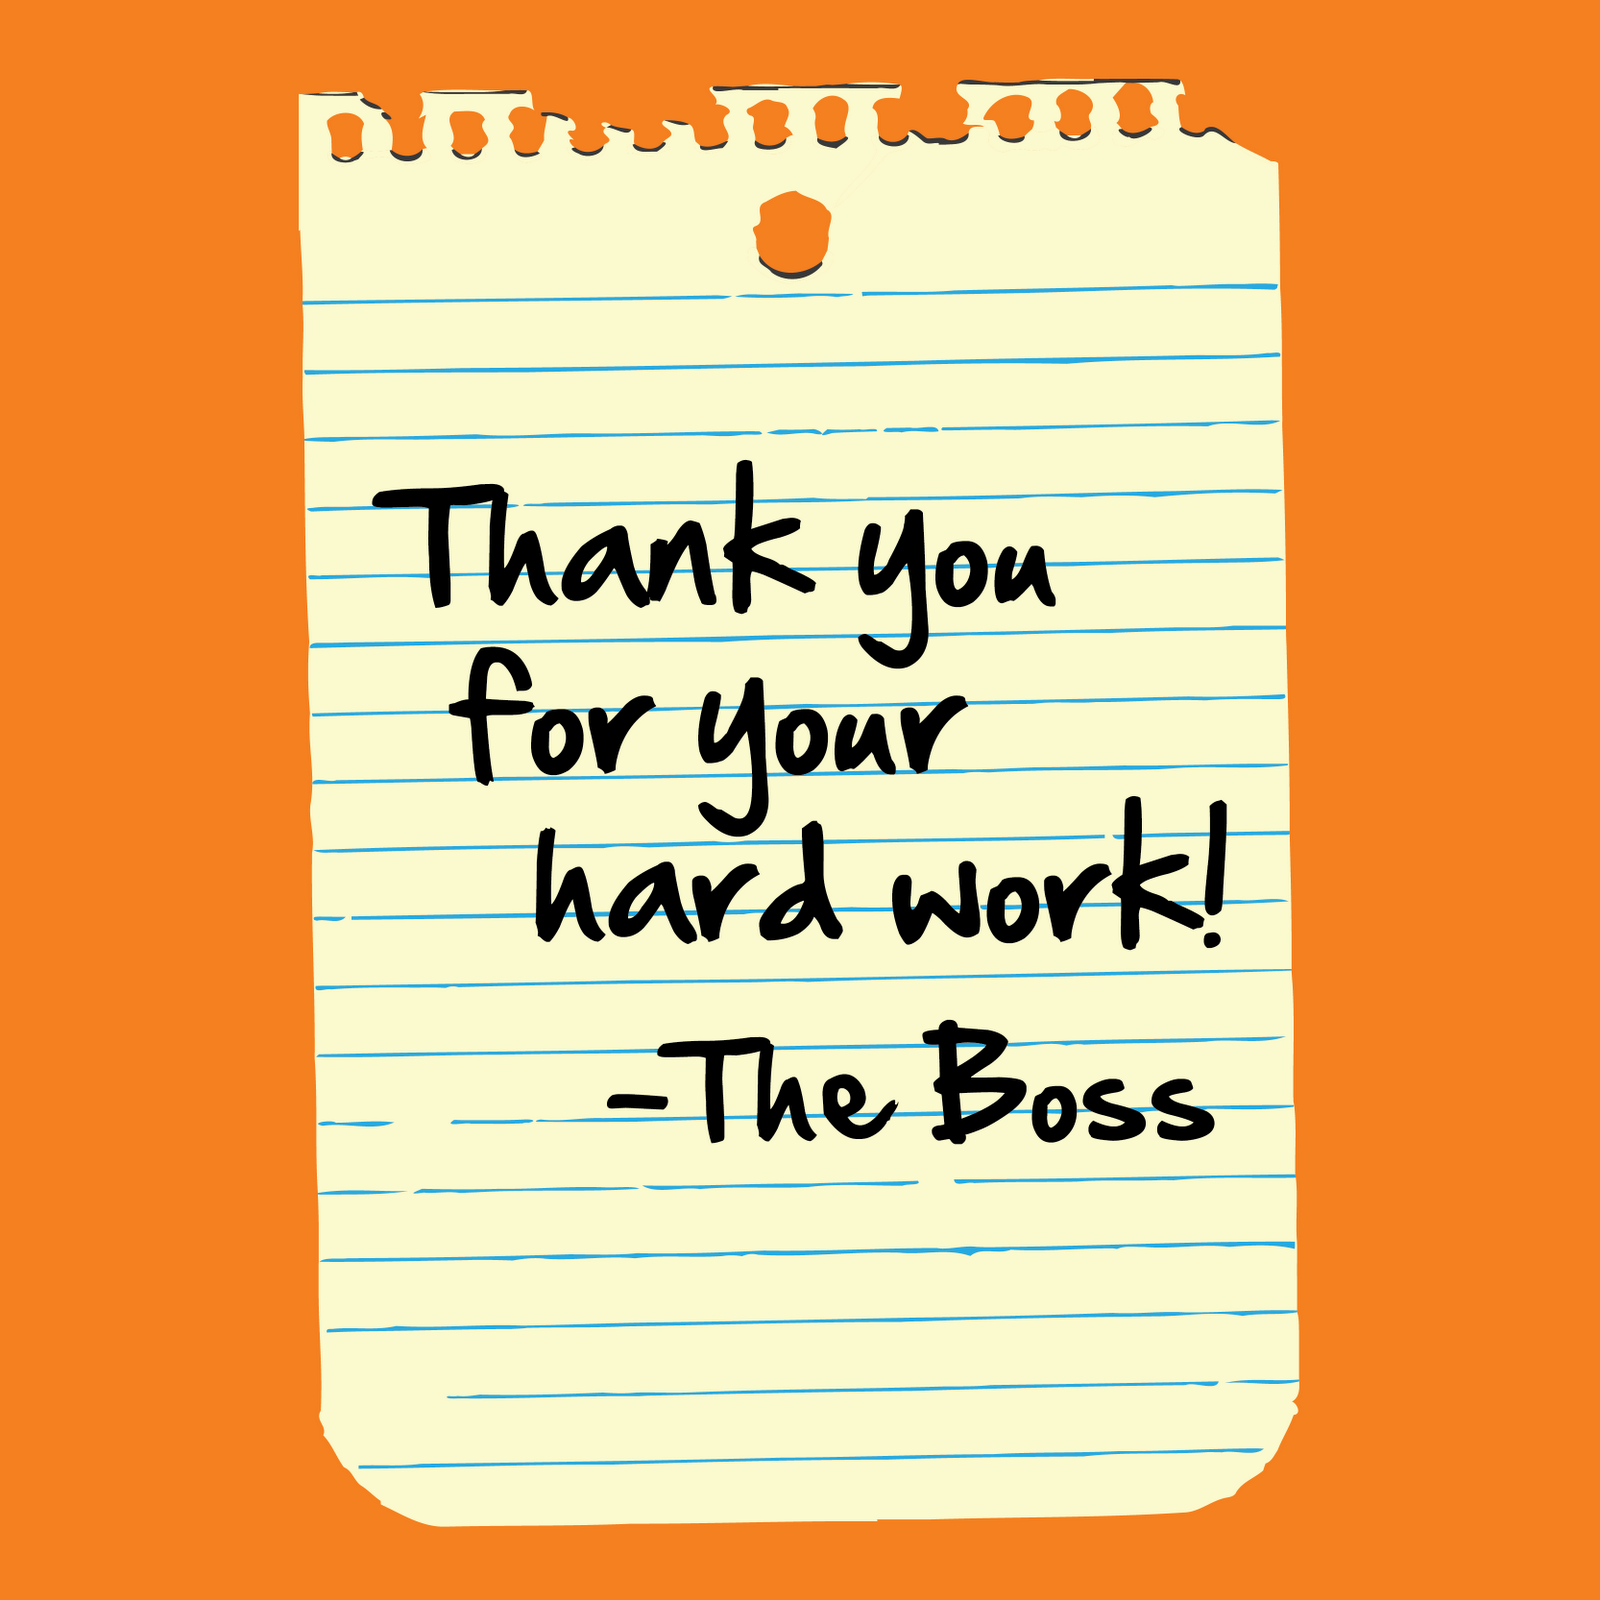 Appreciation Quotes For Good Work Done: The Ramblings Of @Nikki2987: 3 Free Ways To Keep Your